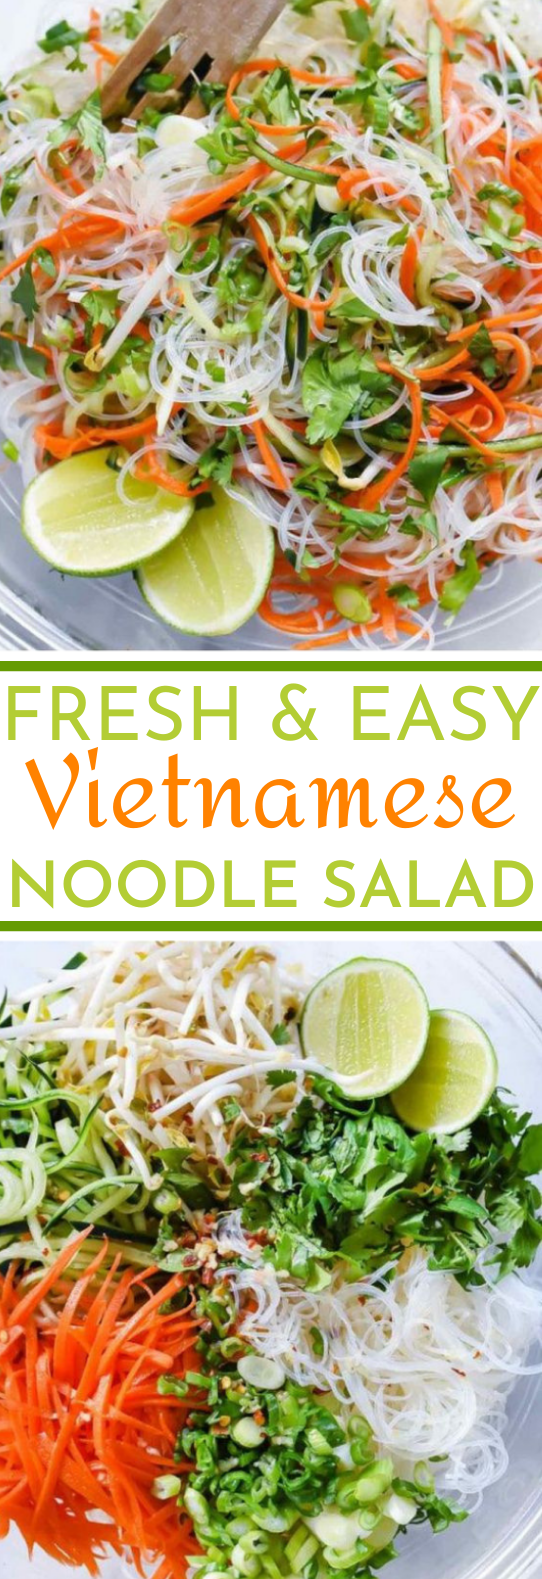 Fresh And Easy Vietnamese Noodle Salad #vegan #salad #glutenfree #lunch #healthy